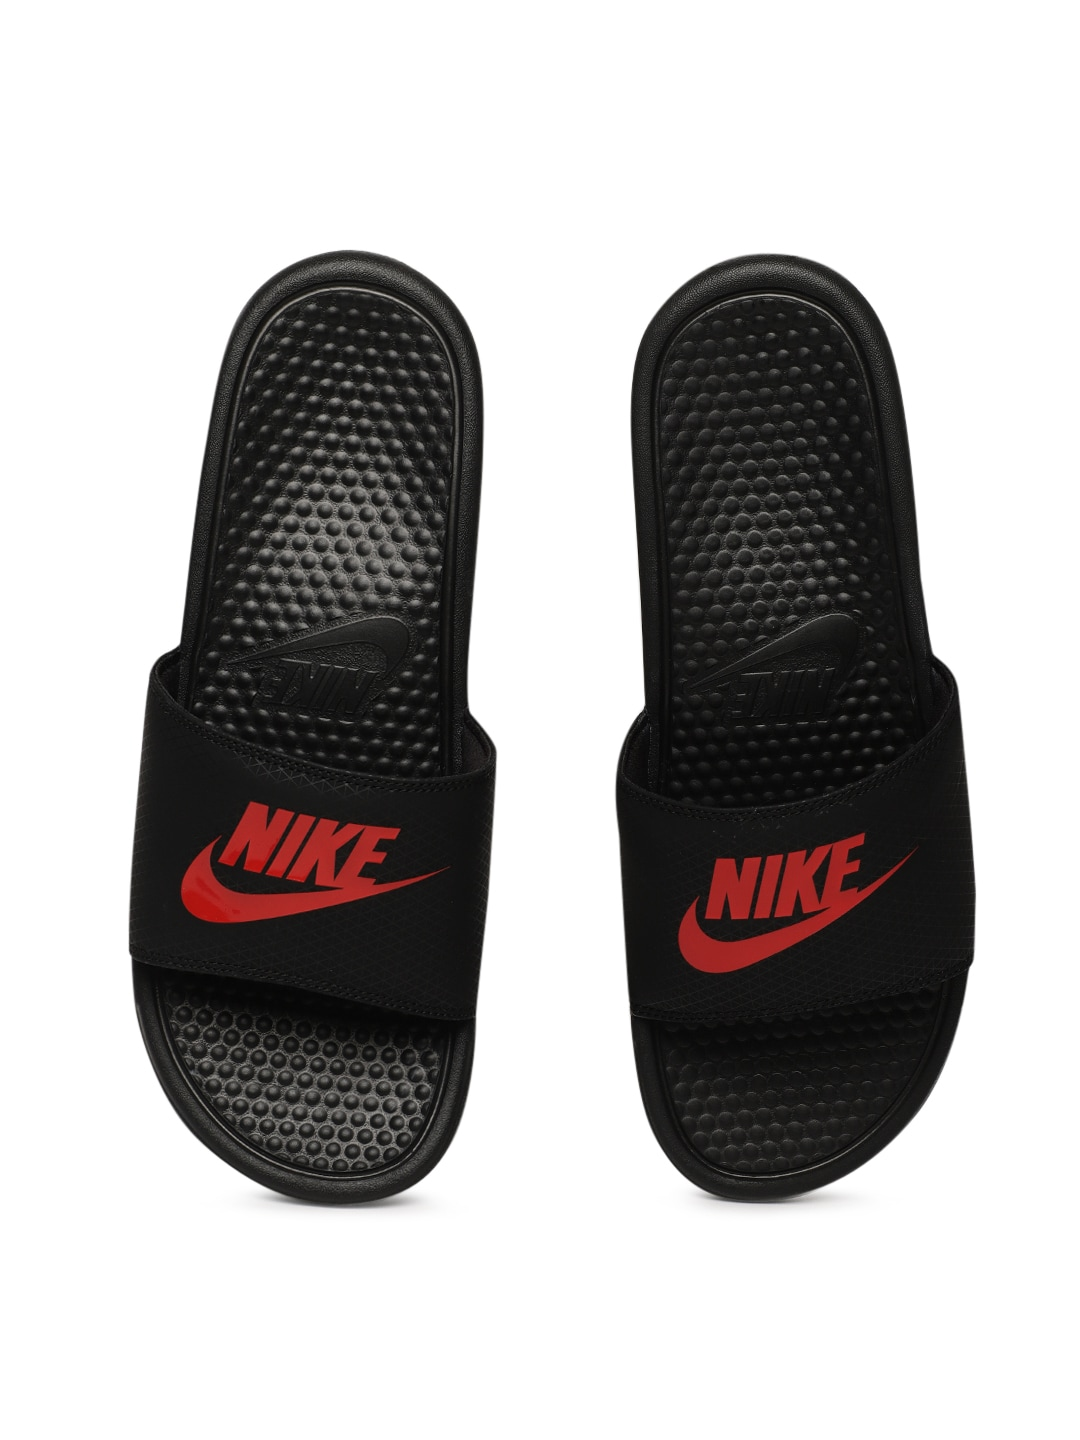 a26f5220afa2fc Nike Flip-Flops - Buy Nike Flip-Flops for Men Women Online